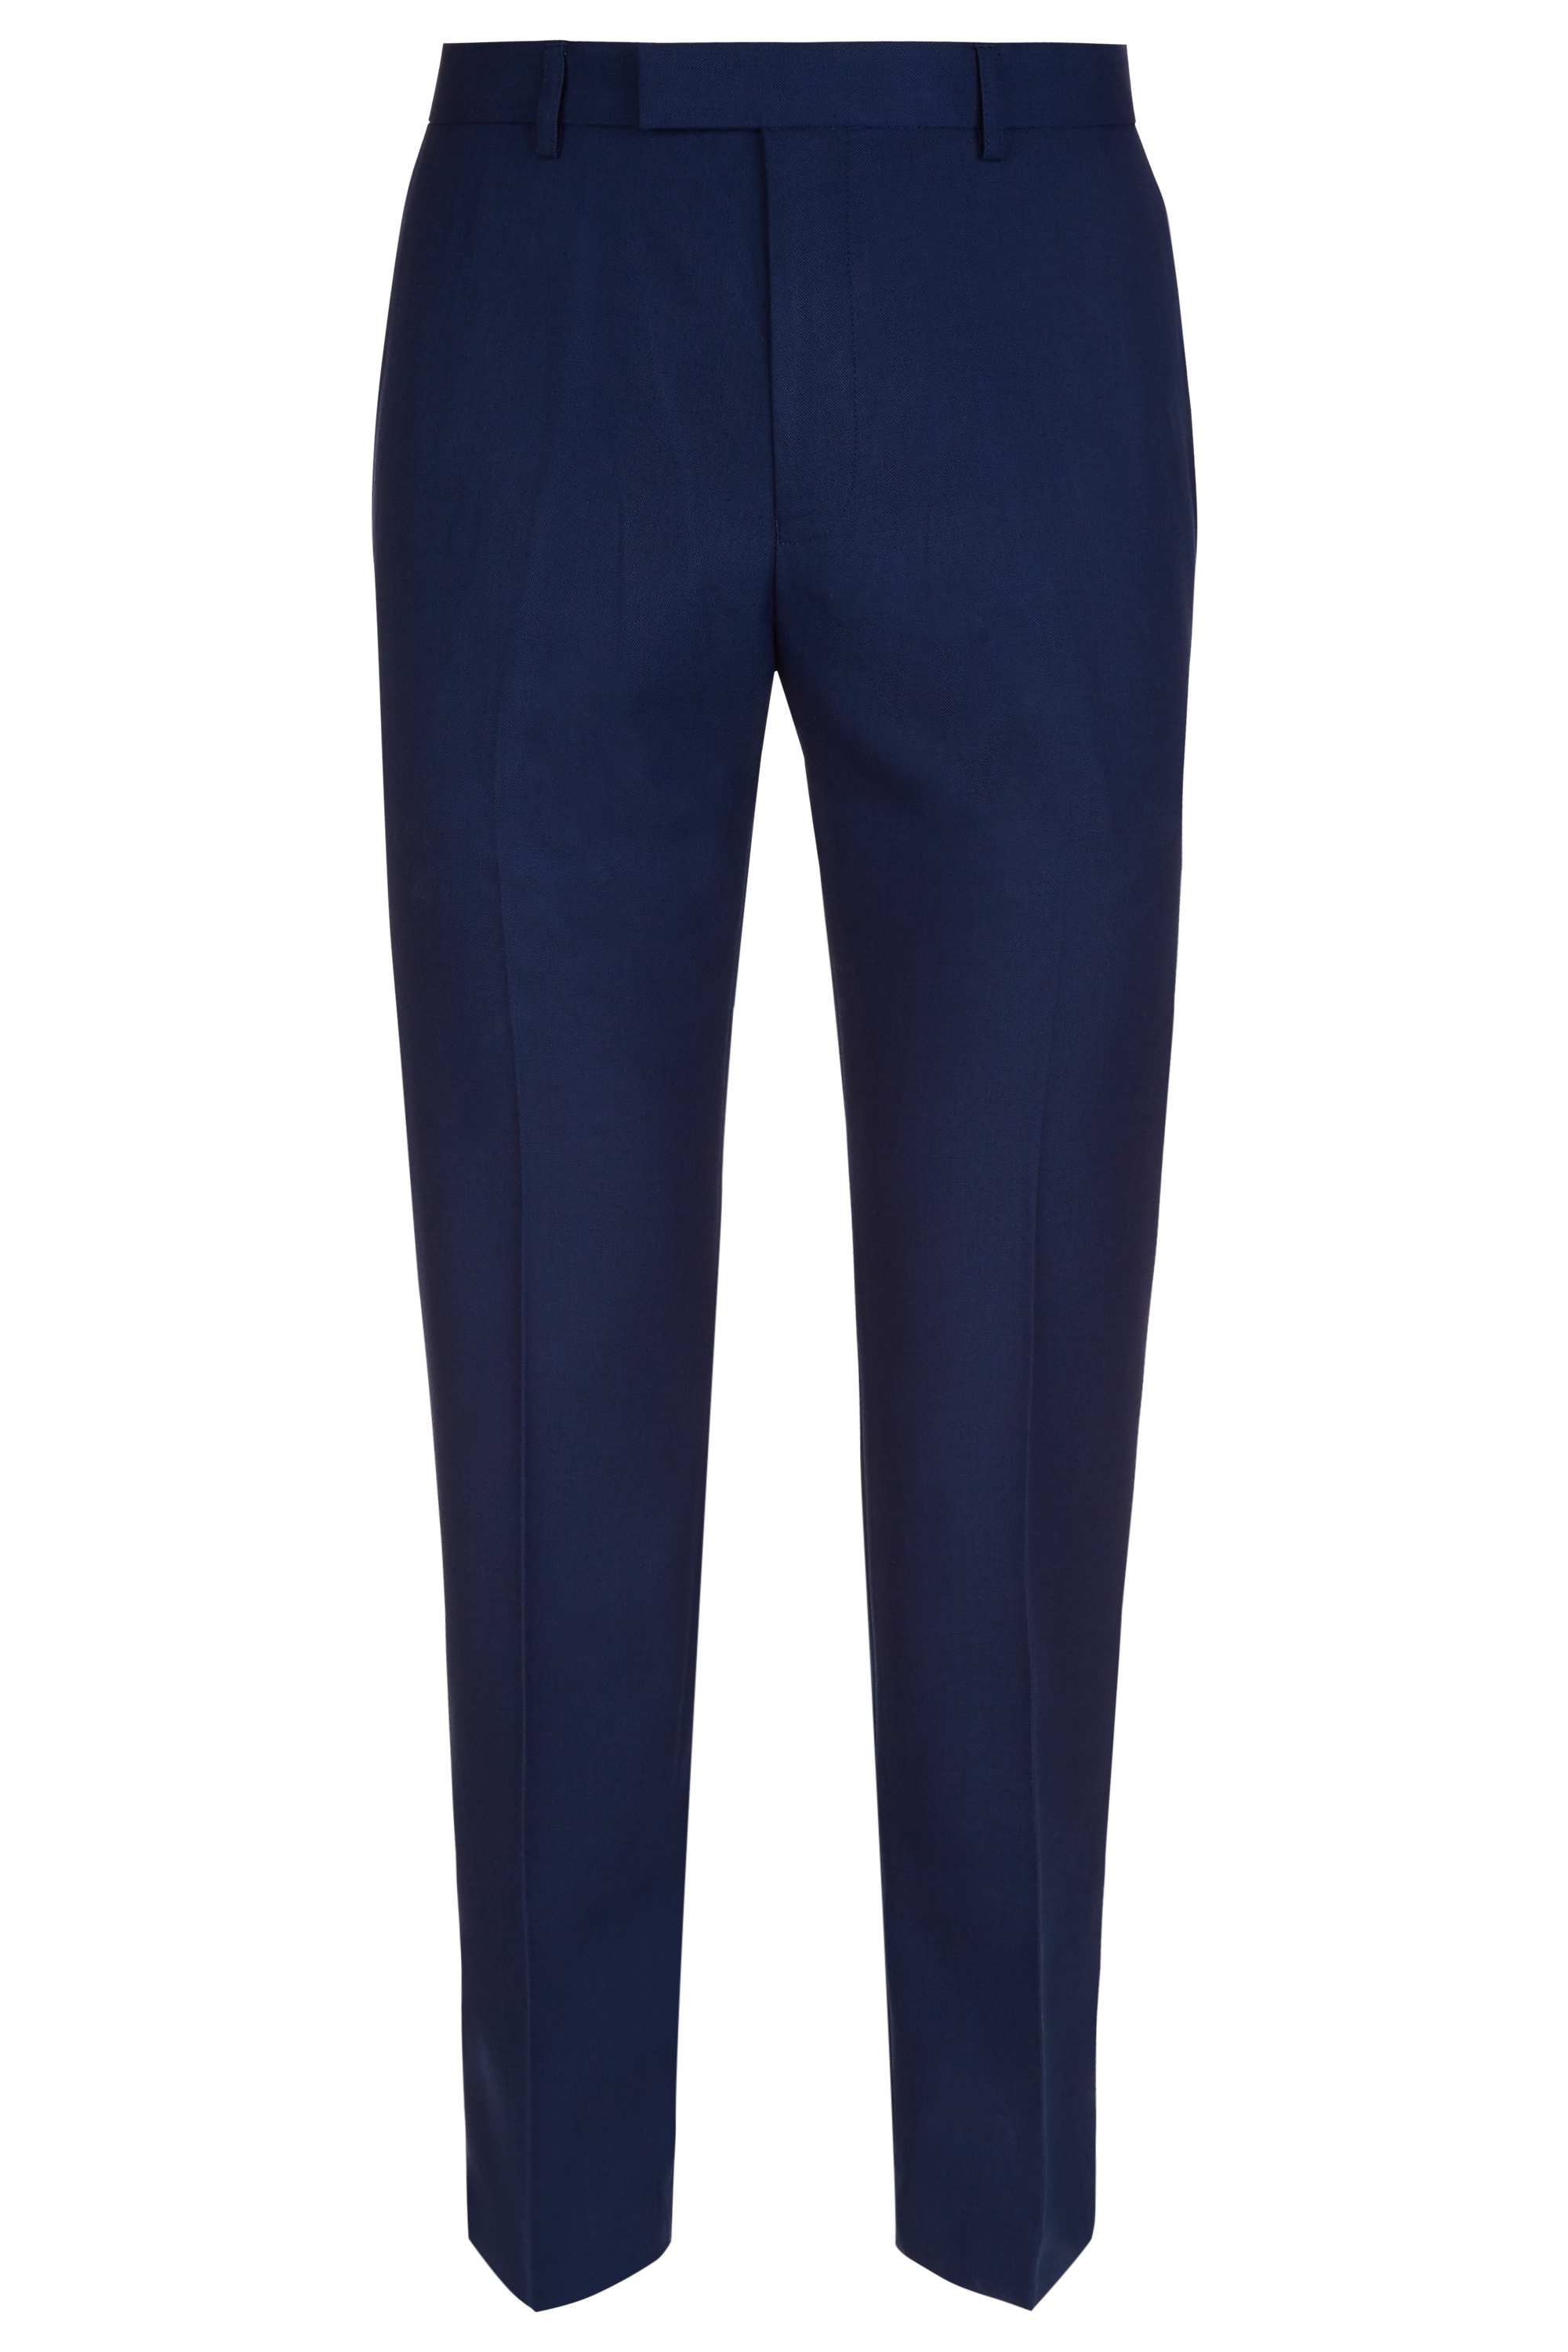 1008-formal-trousers-navy